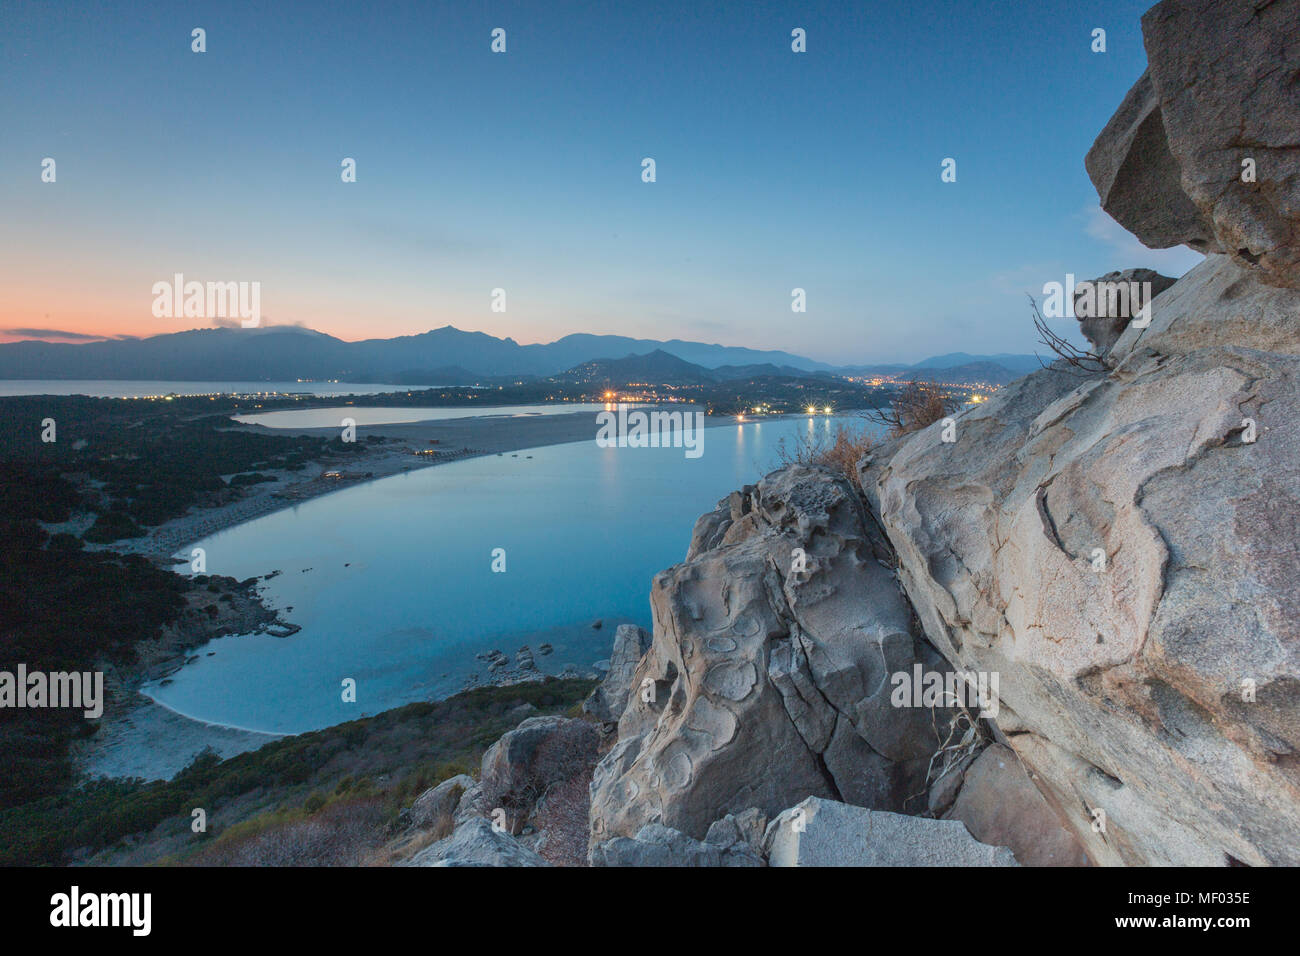 Top view of the bay with sandy beaches and lights of a village at dusk Porto Giunco Villasimius Cagliari Sardinia Italy Europe - Stock Image